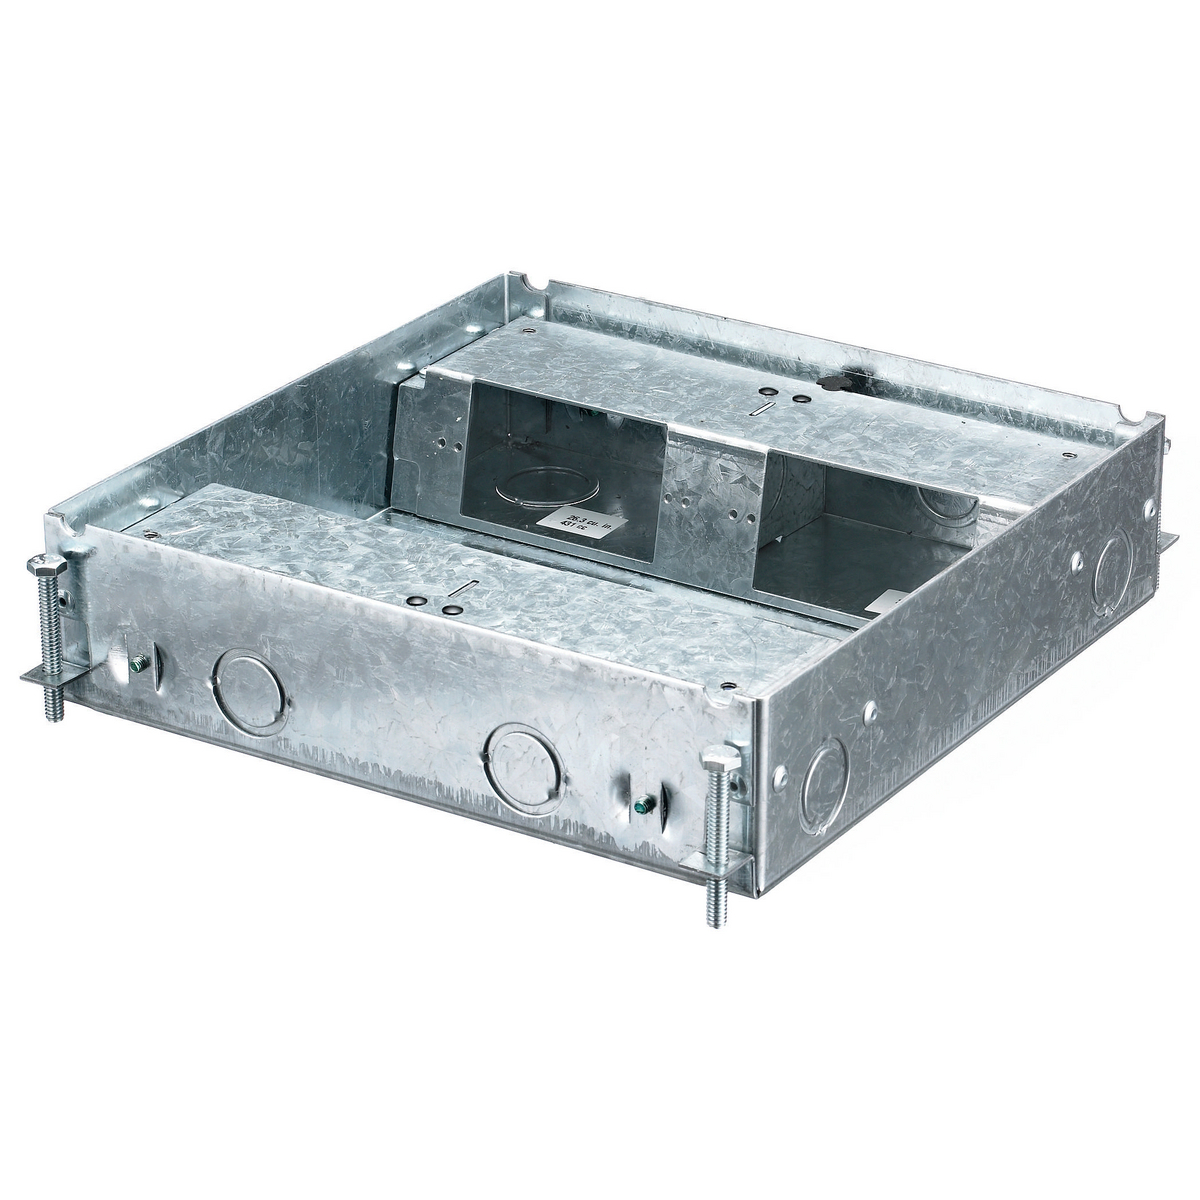 HUBBELL HBLCFB401BASE HUBBELL WIRING DEVICES, FLOOR BOXES, CONCRETE FLOOR BOX SERIES, 4-